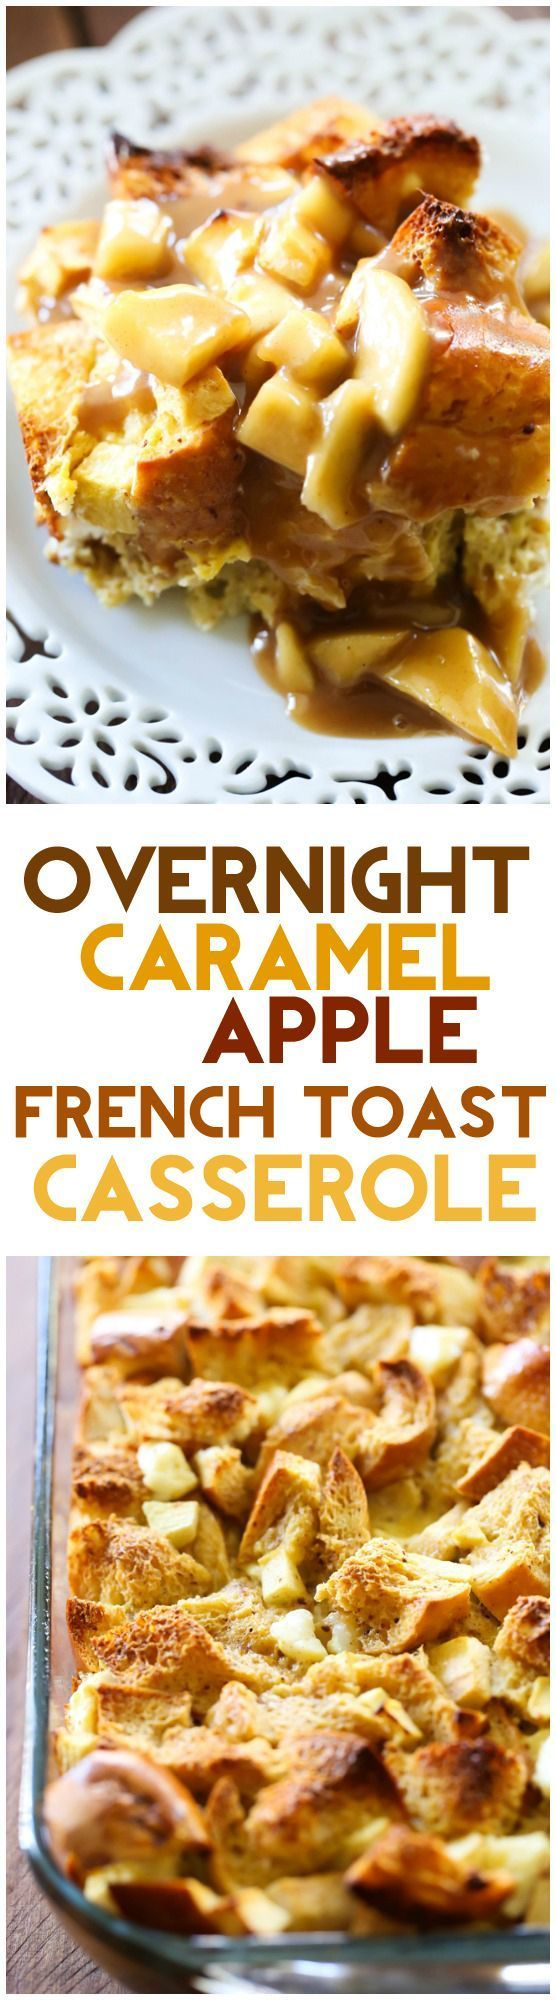 Overnight Caramel Apple French Toast Casserole. All the prep work is done the night before and ready to pop in the oven in the morning! The caramel apple flavor is in each and every bite.